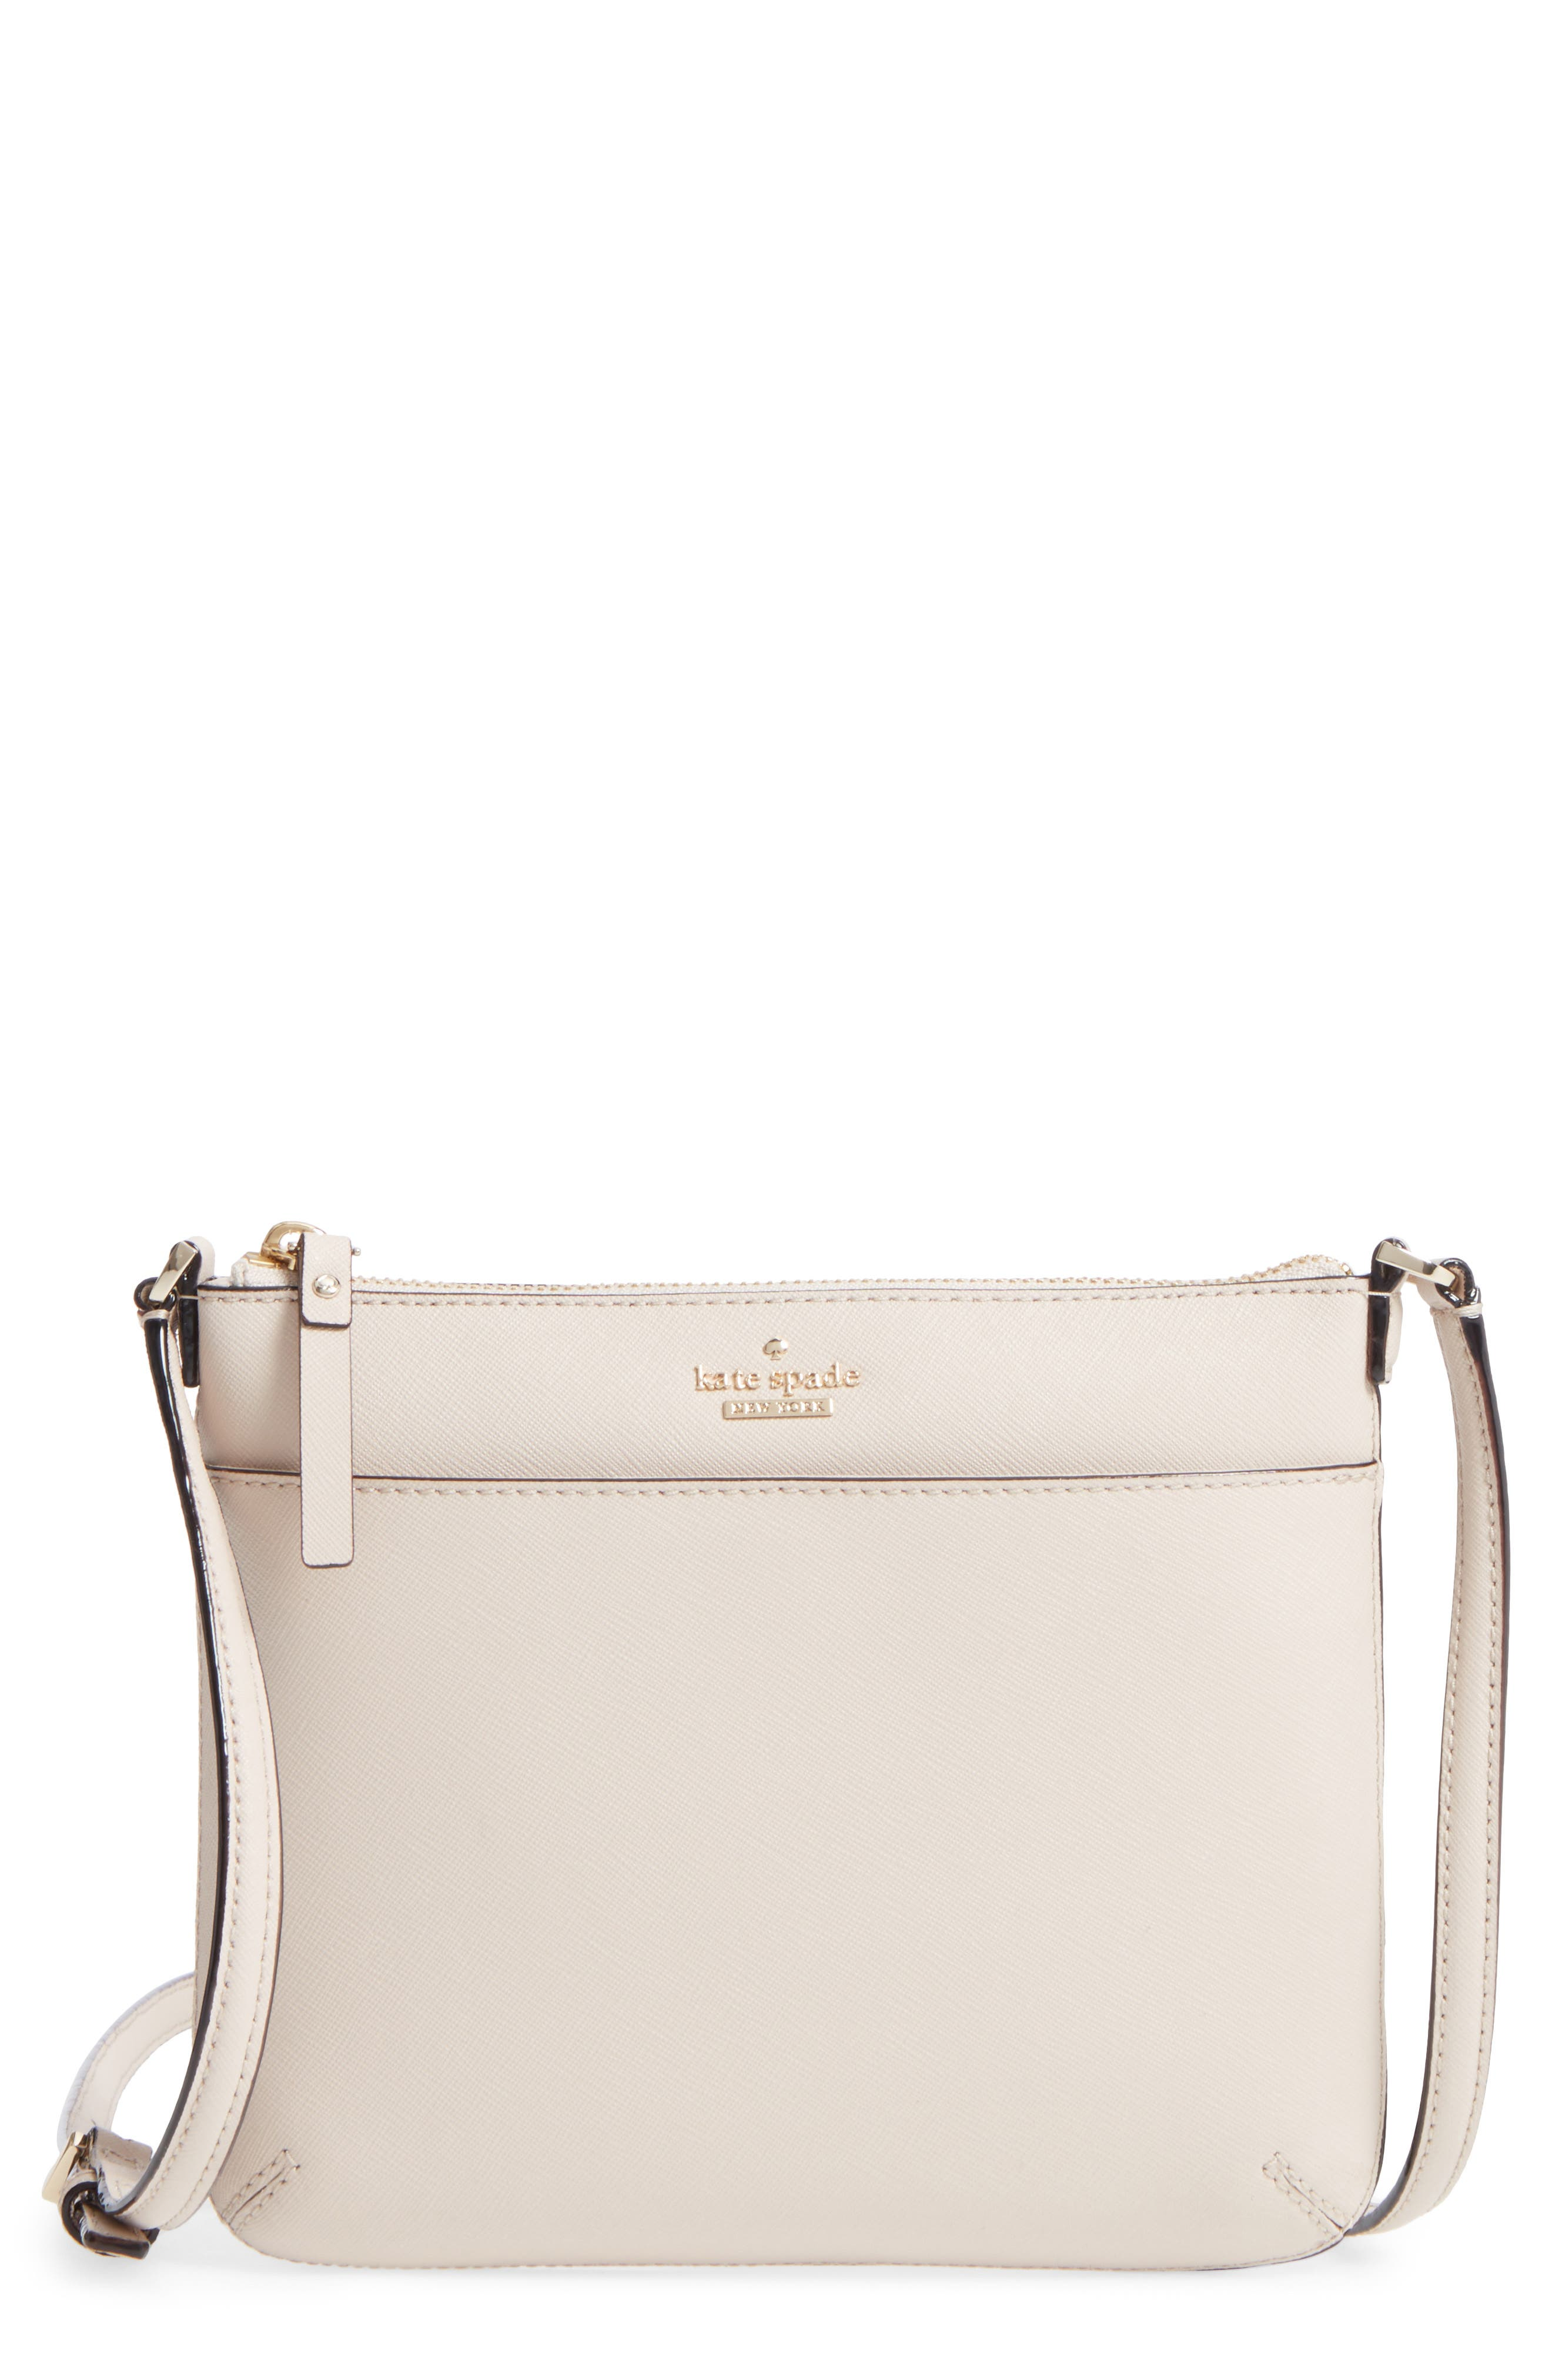 kate spade new york cameron street - tenley leather crossbody bag